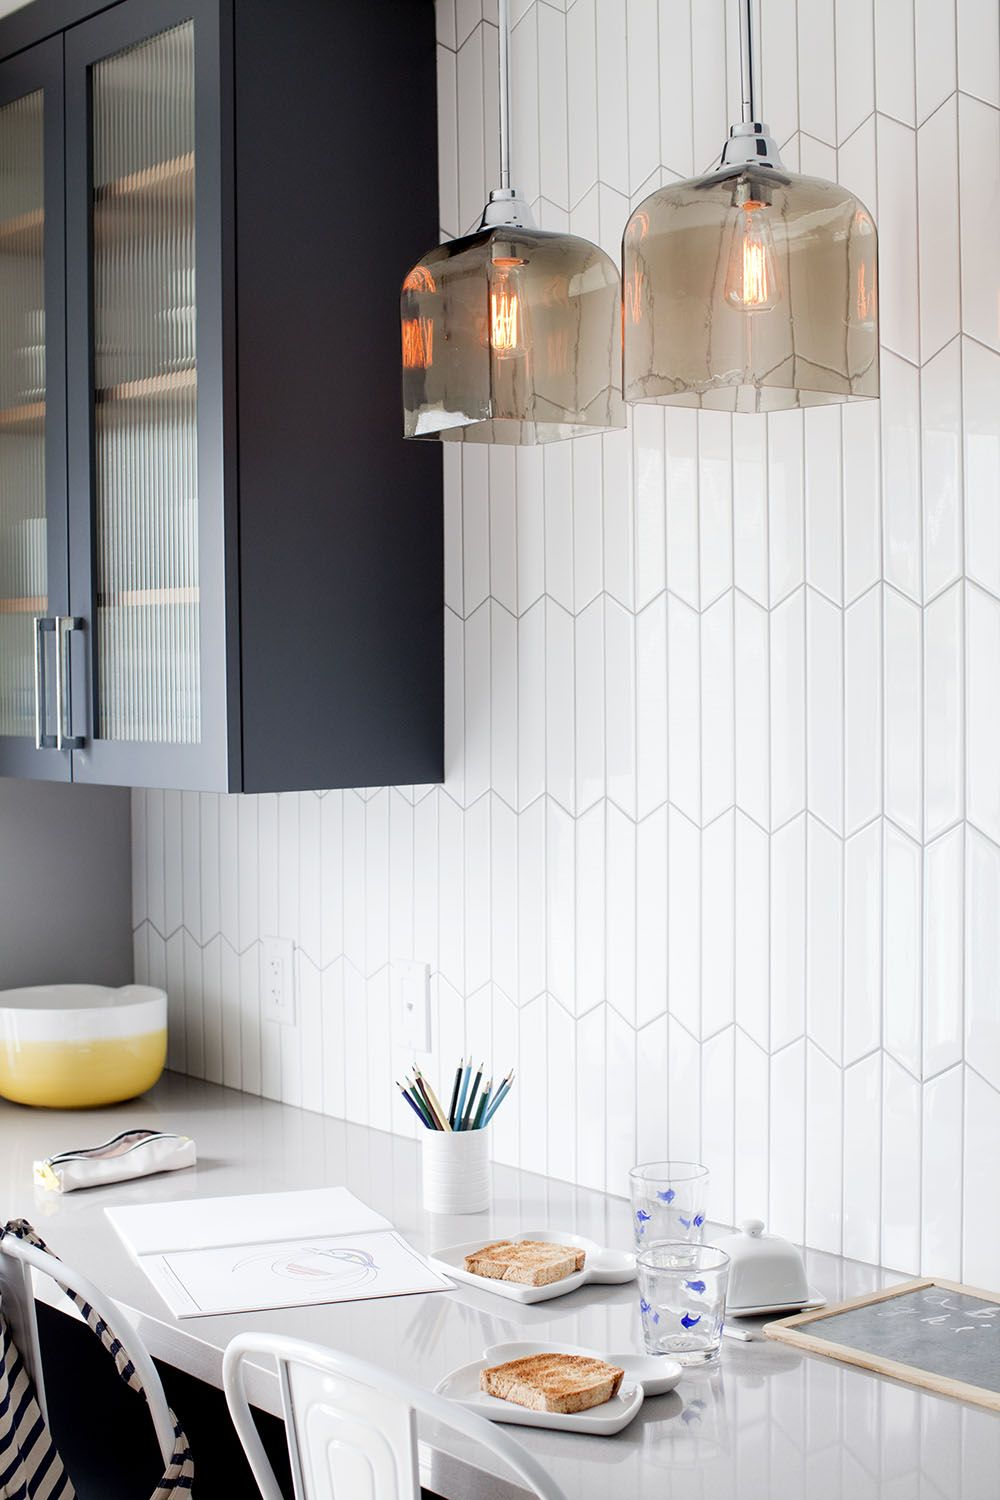 13 Sleek White Modern Kitchen Backsplash Ideas White Modern